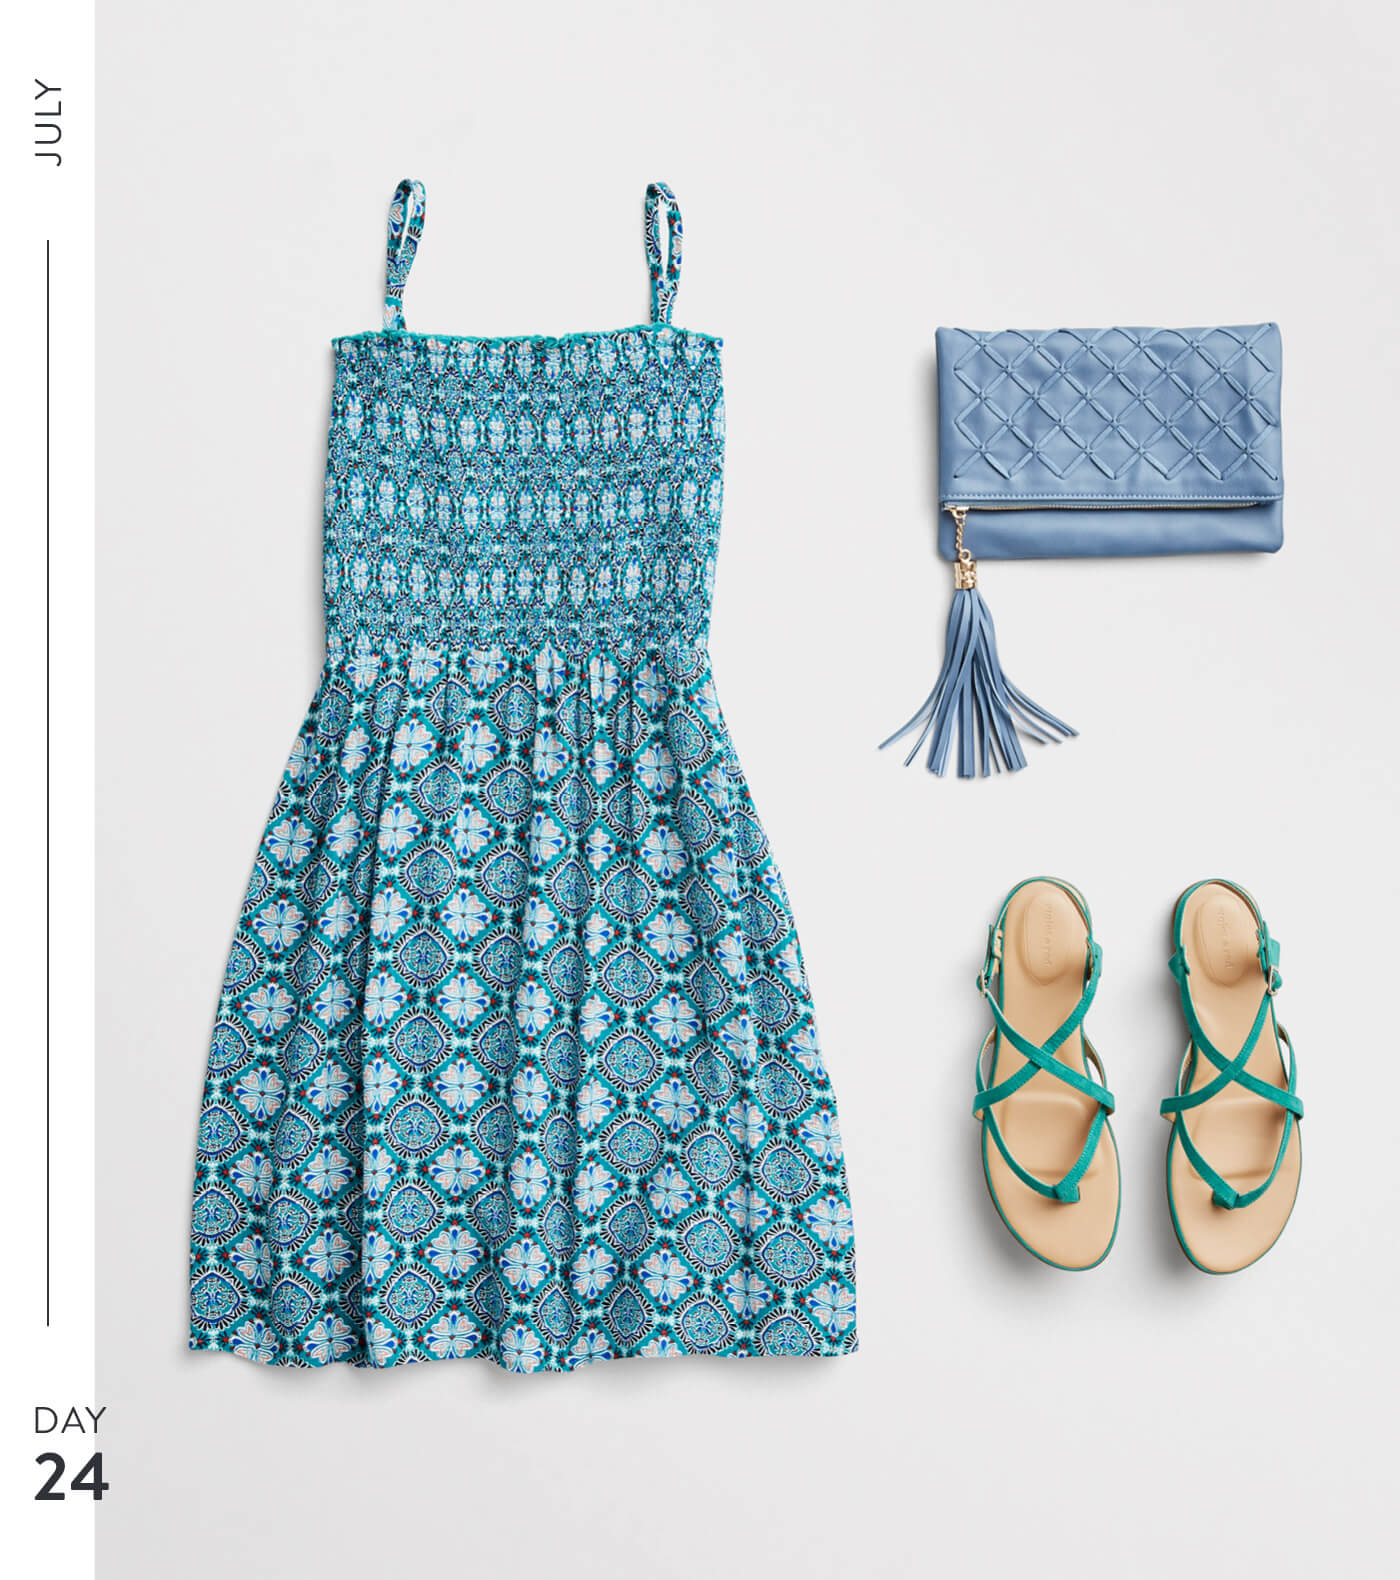 T3_W19_BLG_July-Month-of-Outfits-_357260432_24